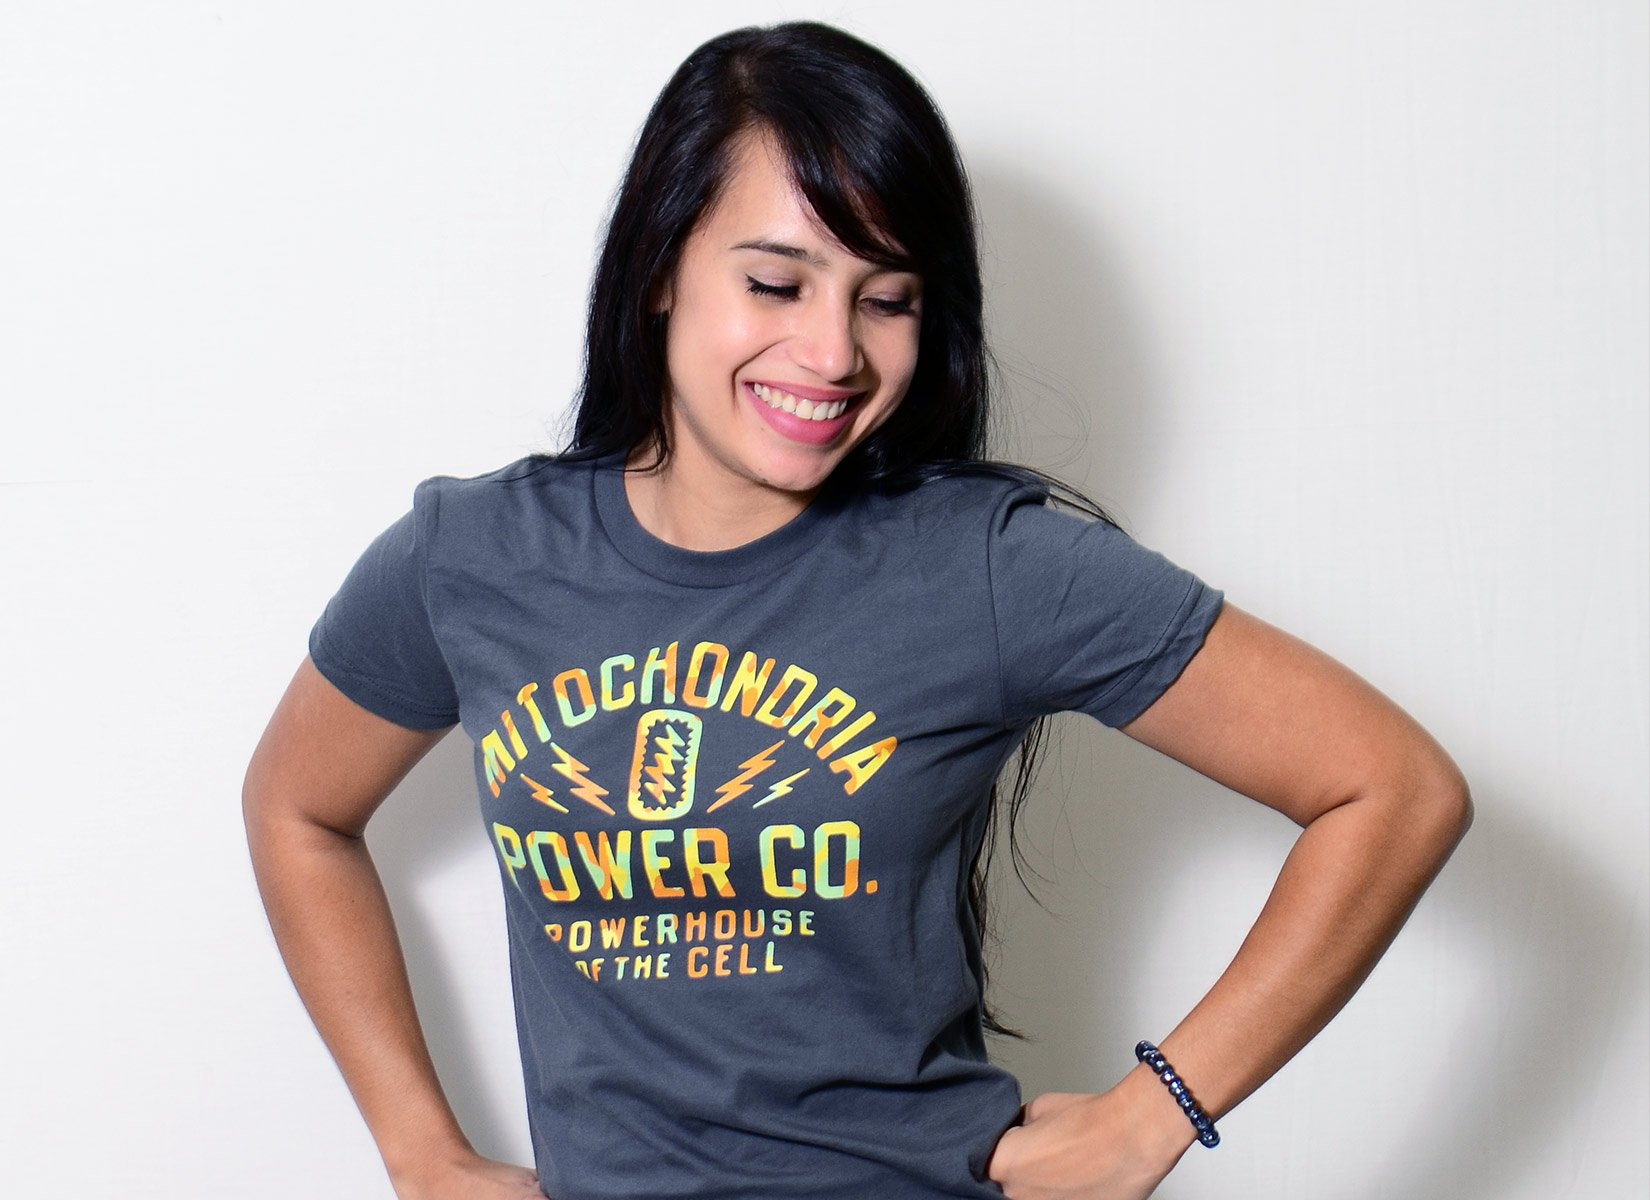 Mitochondria Powerhouse Of The Cell on Juniors T-Shirt